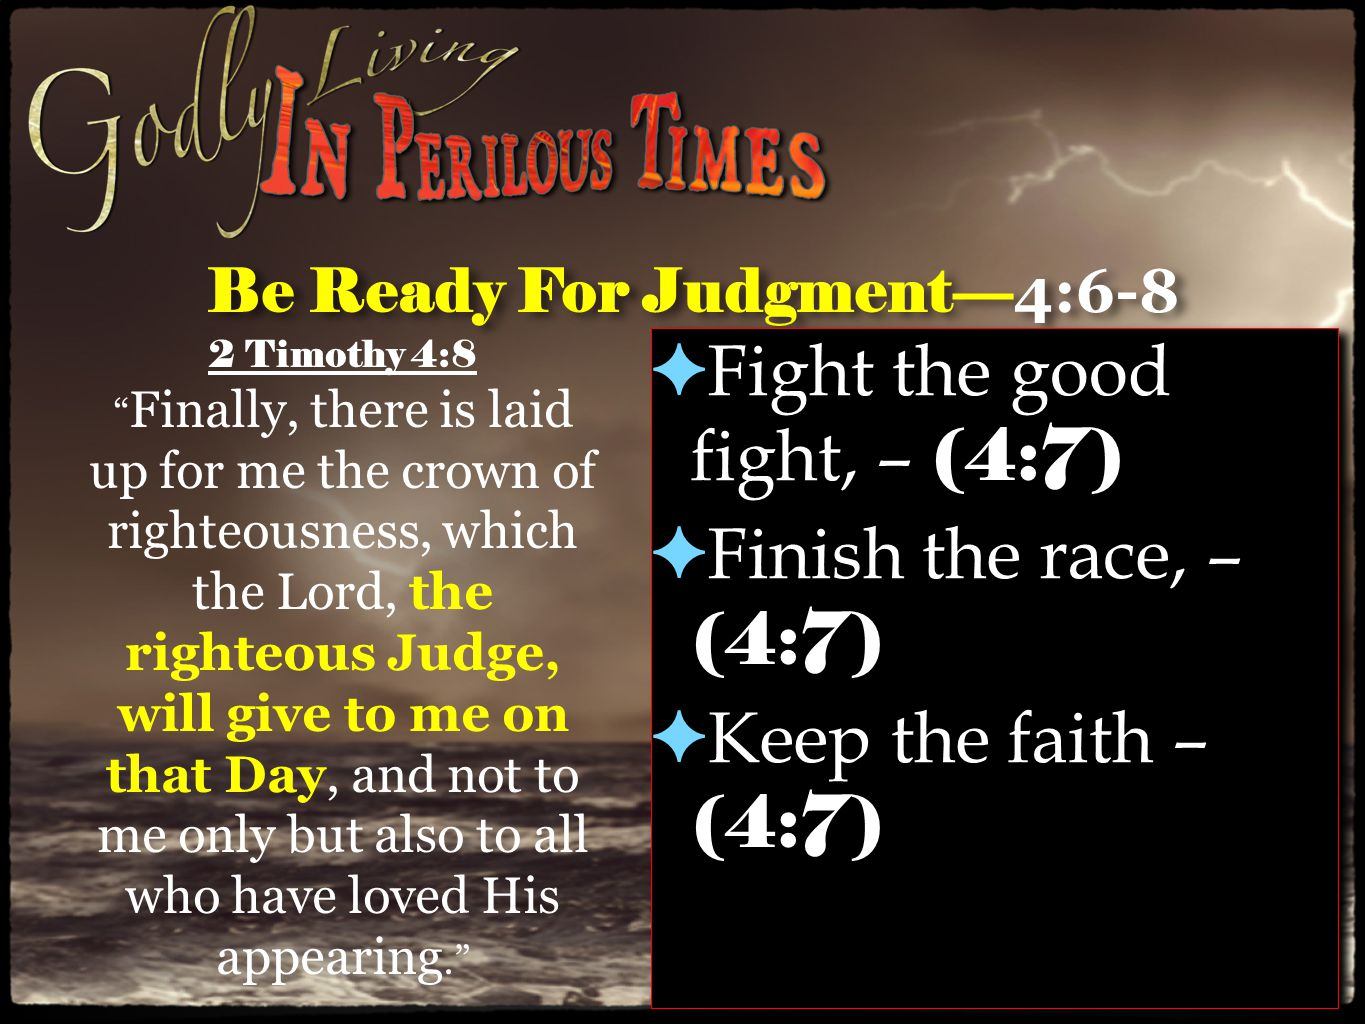 Be Ready For Judgment— 4:6-8 ✦ Fight the good fight, – (4:7) ✦ Finish the race, – (4:7) ✦ Keep the faith – (4:7) ✦ Fight the good fight, – (4:7) ✦ Finish the race, – (4:7) ✦ Keep the faith – (4:7) 2 Timothy 4:8 Finally, there is laid up for me the crown of righteousness, which the Lord, the righteous Judge, will give to me on that Day, and not to me only but also to all who have loved His appearing.